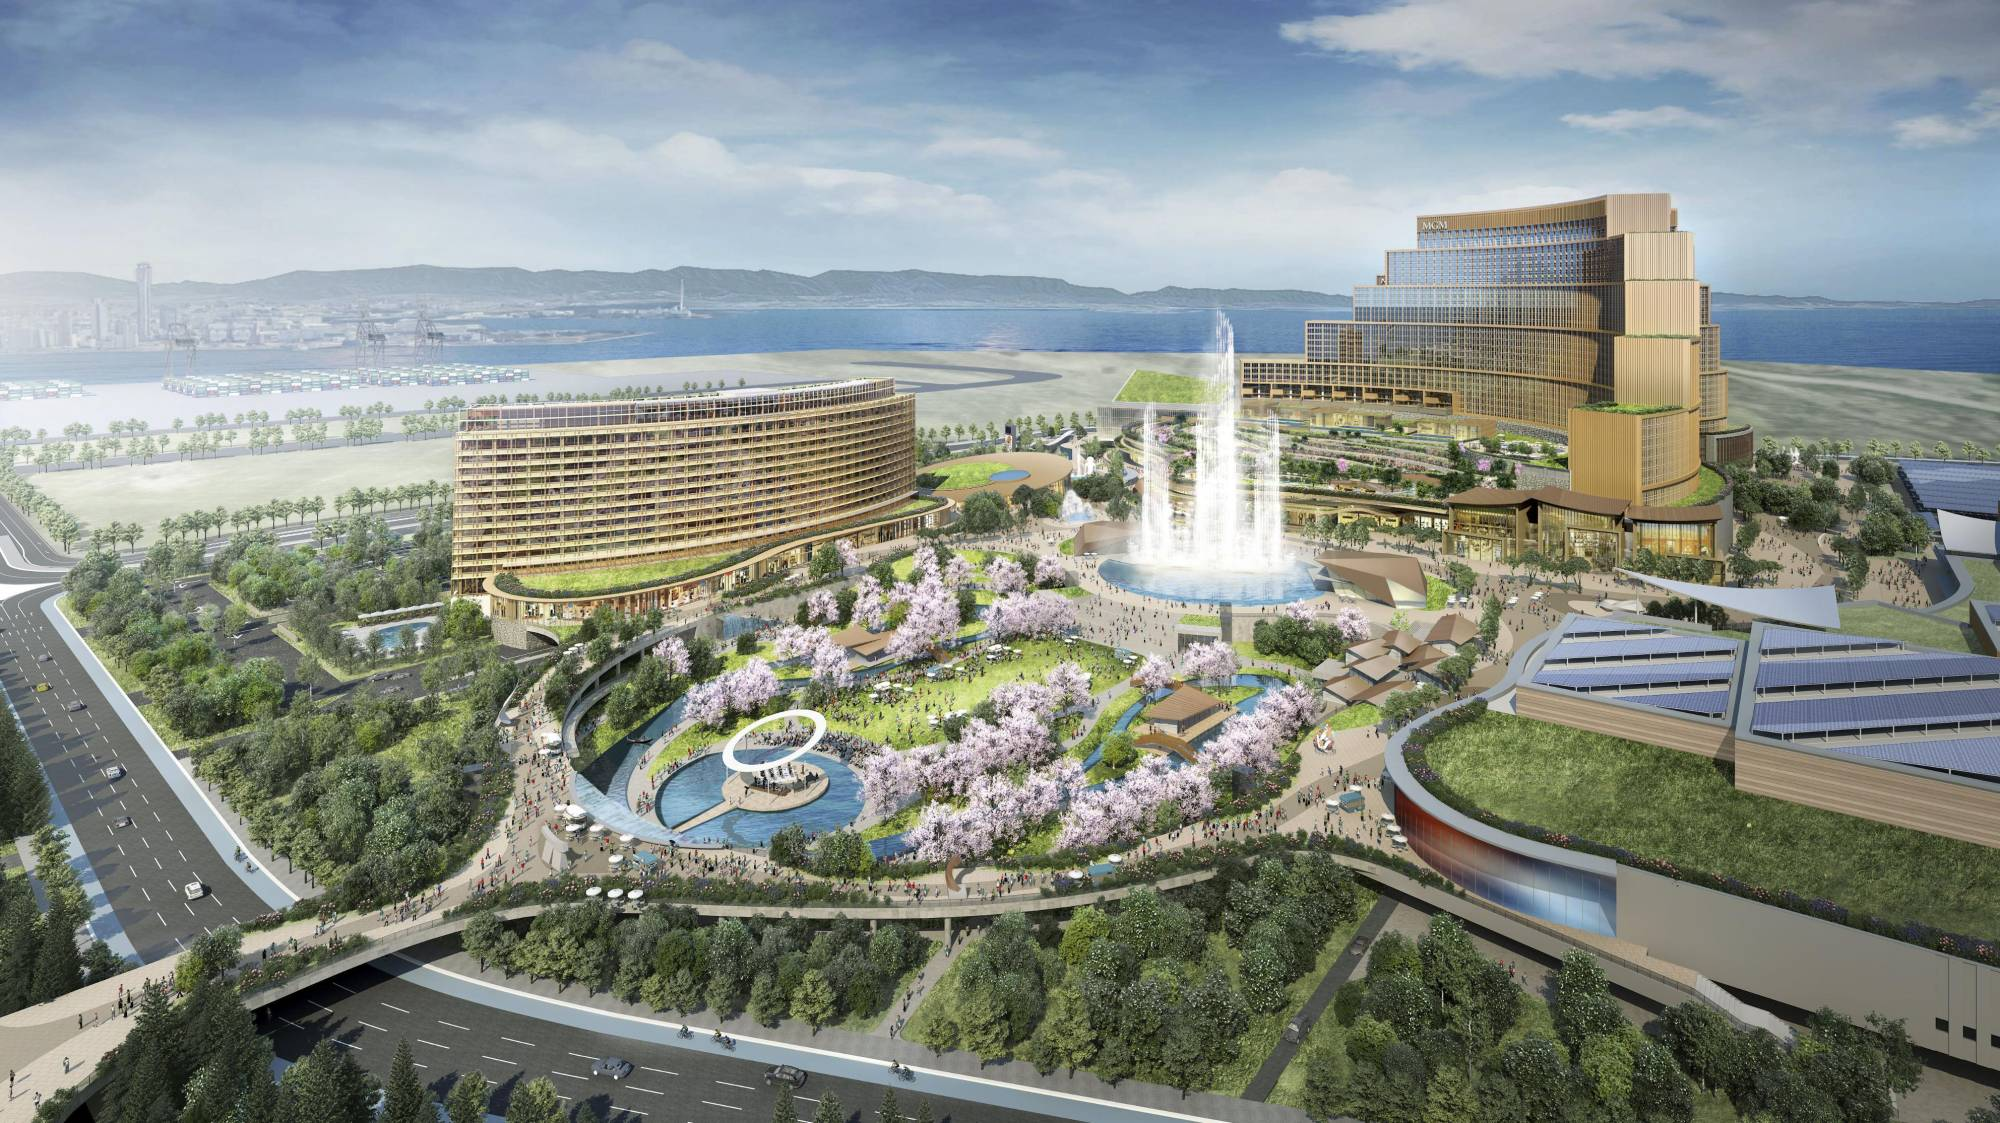 An artist's impression of an integrated casino complex planned for construction in Osaka. | COURTESY OF MGM RESORTS INTERNATIONAL AND ORIX CORP. / VIA KYODO